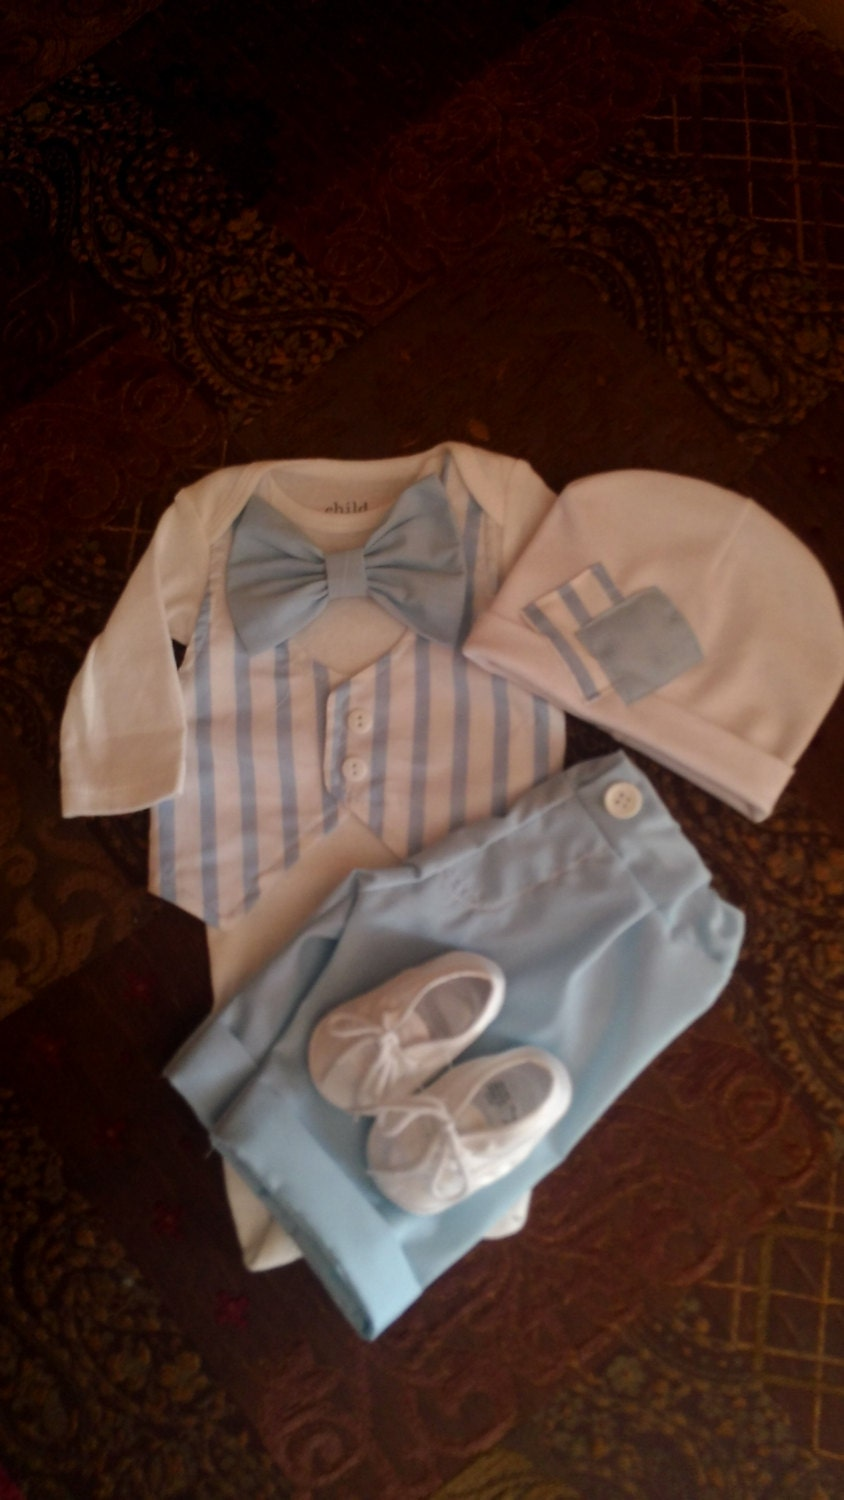 Sarah Louise manufacturer of fine baby and childrens clothing was established in by Leonard and Diane Given from their family home. Sarah Louise has now developed into an international organization.